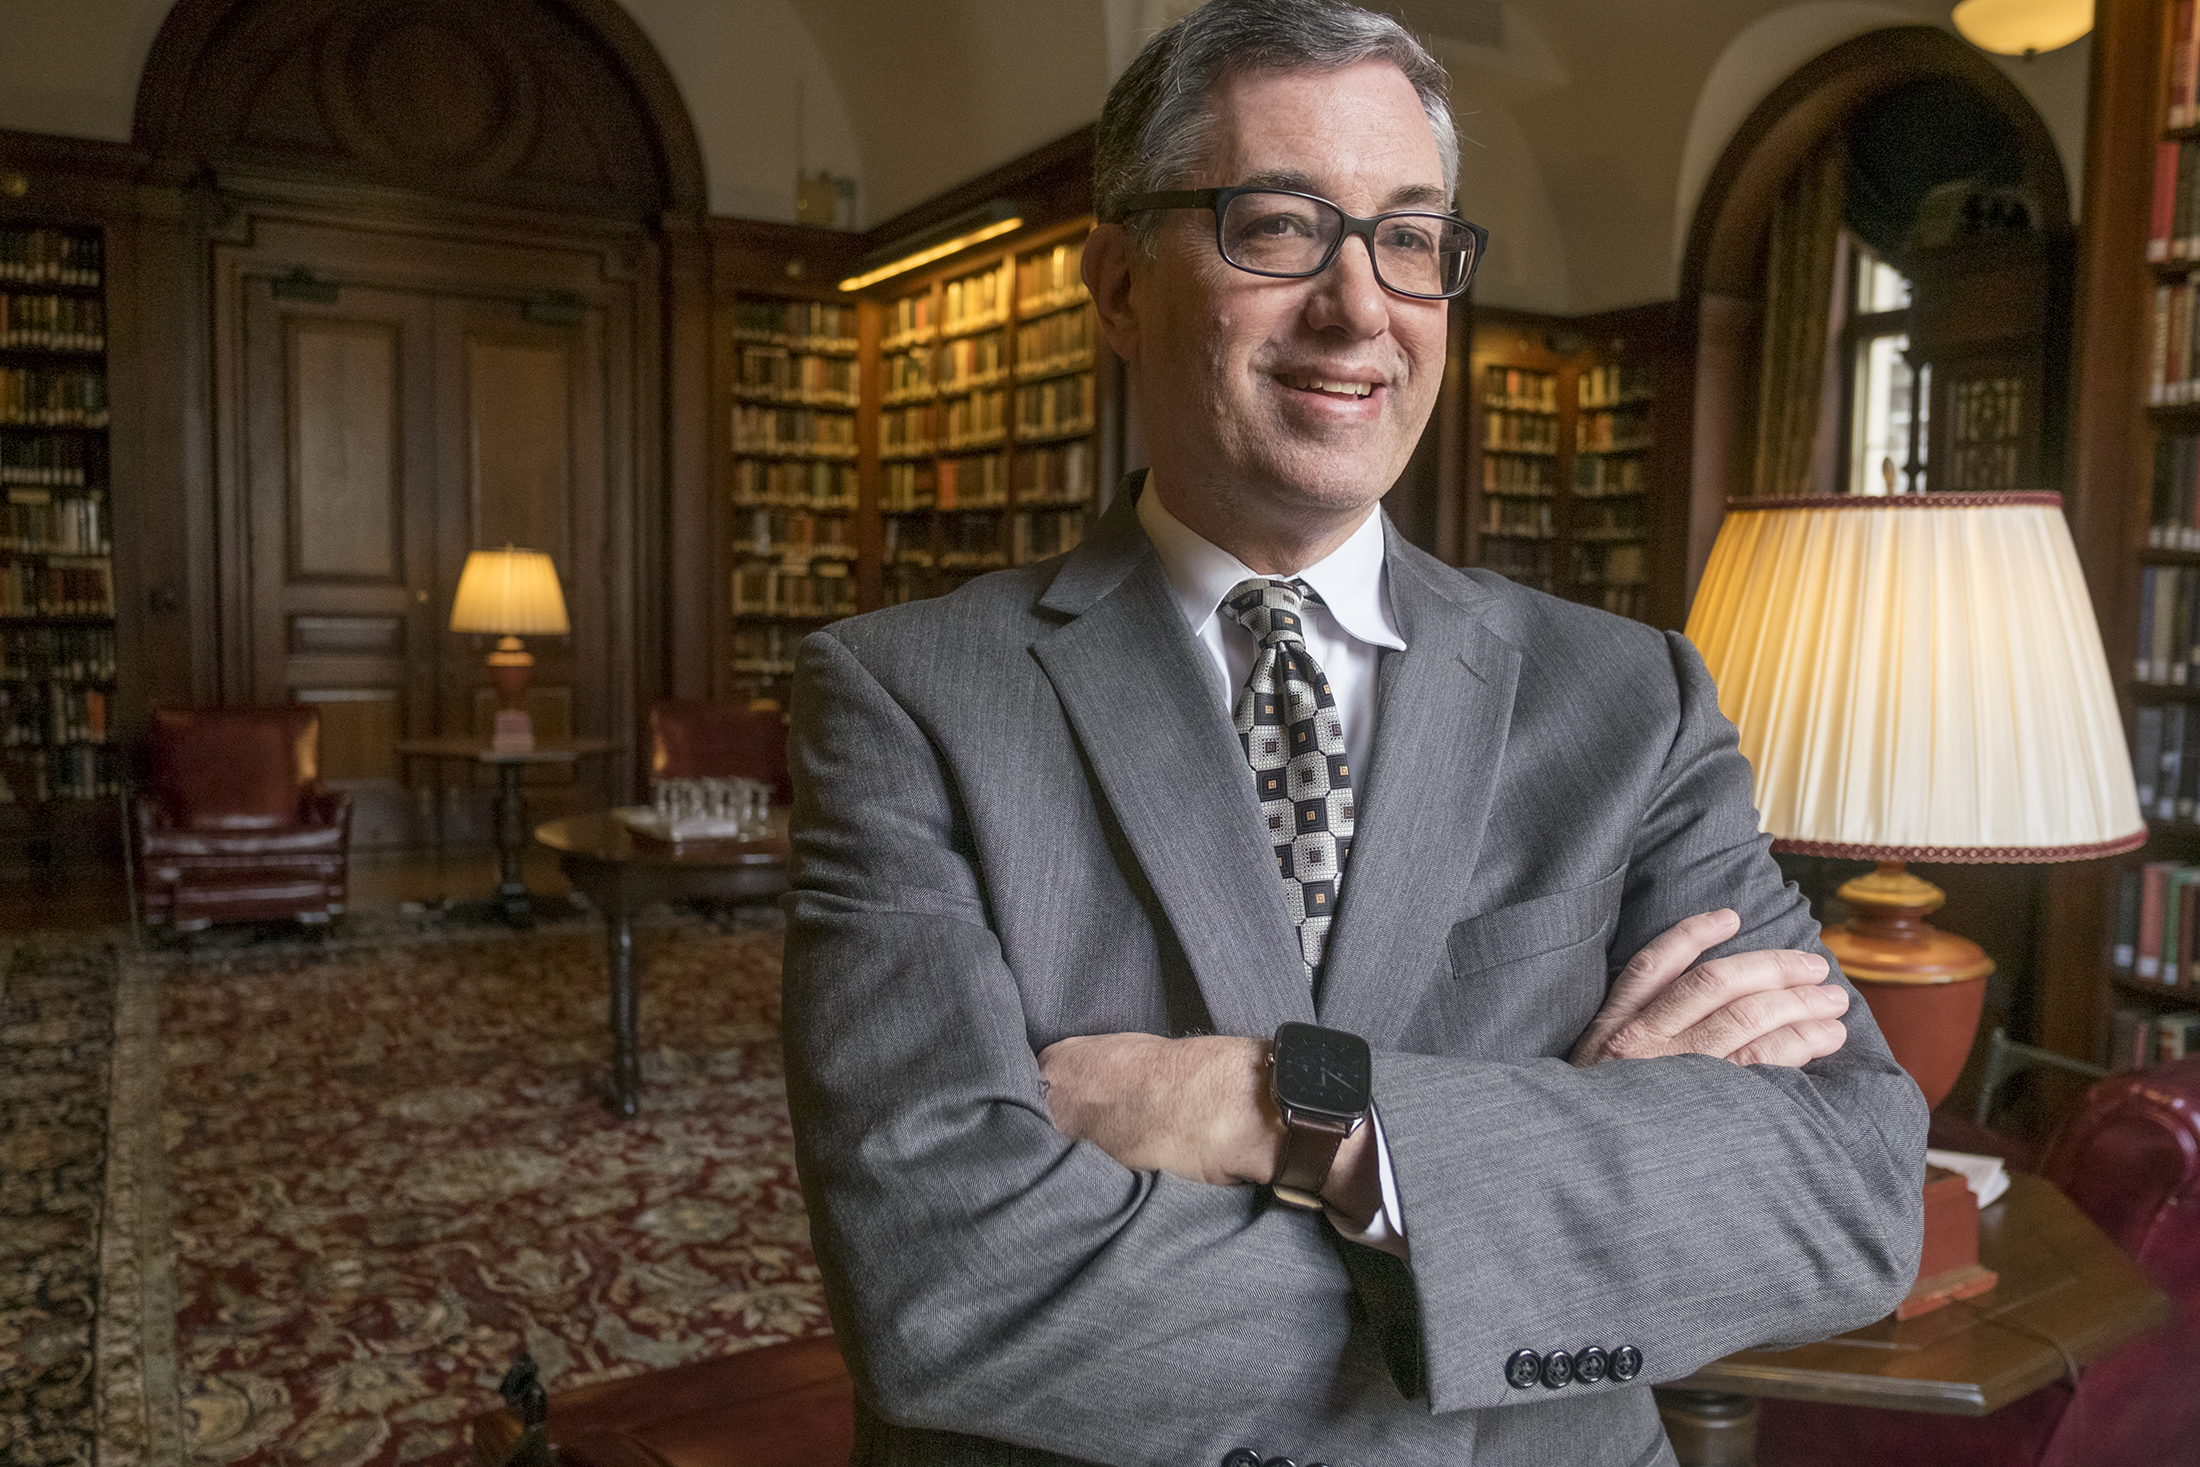 Monday, Feb 27, 2017, Diane Mastrull profiles Marc Kramer, executive director of the Angel Venture Fair which will be held for the 19th time in May. Here Marc Kramer stands in the library at the Union League. ED HILLE / Staff Photographer.